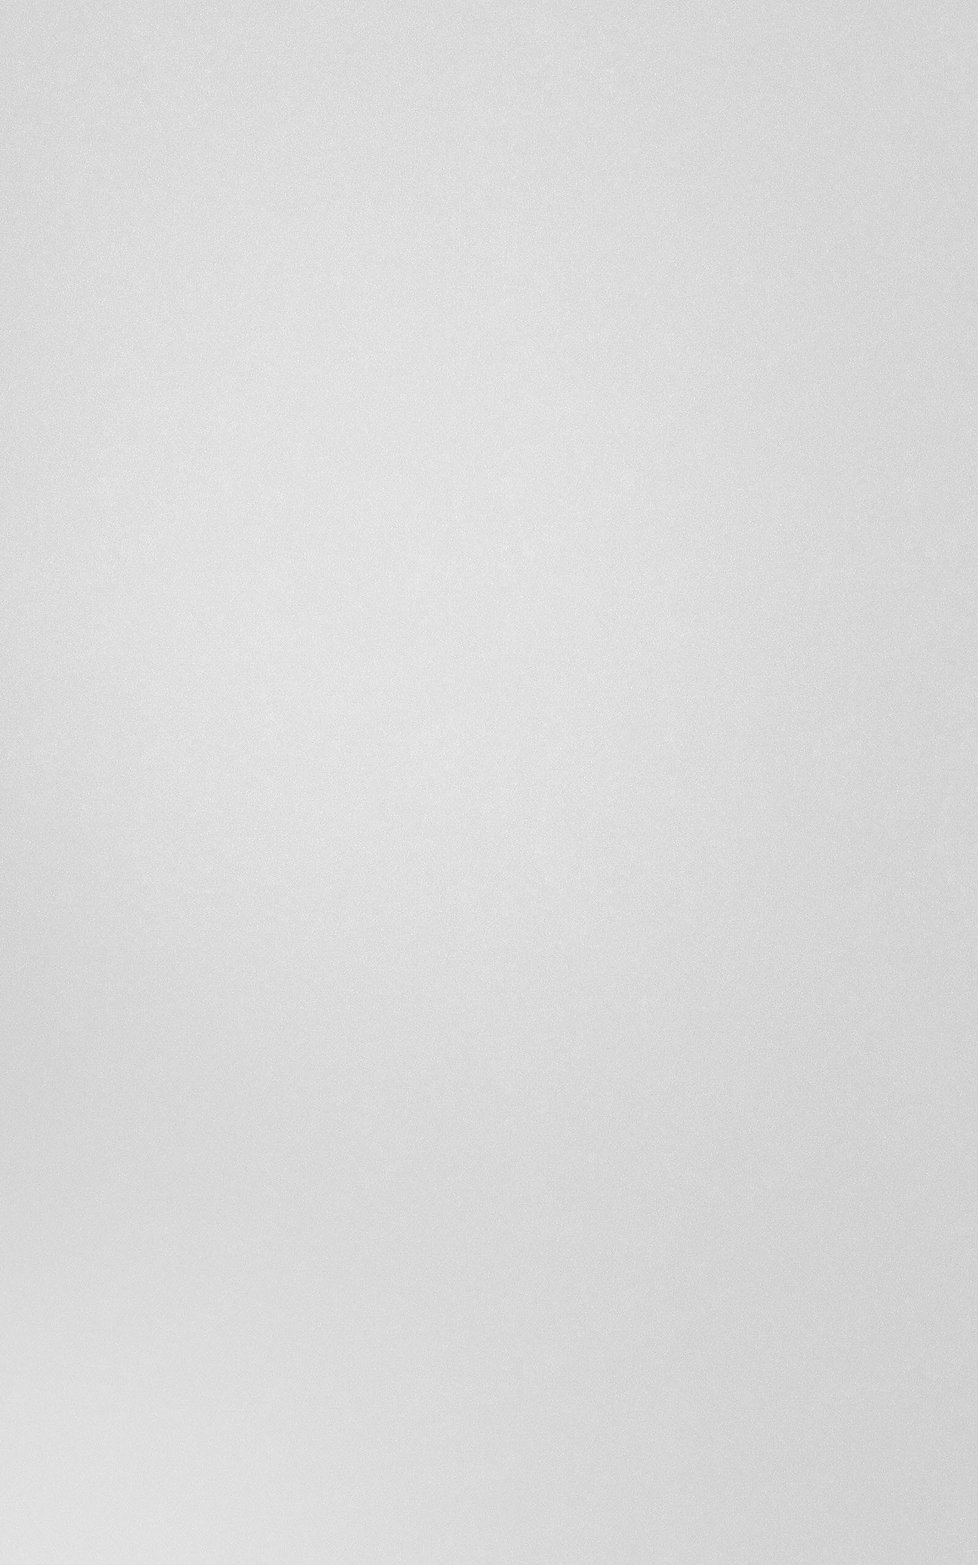 892765-cool-white-3d-background-2560x160